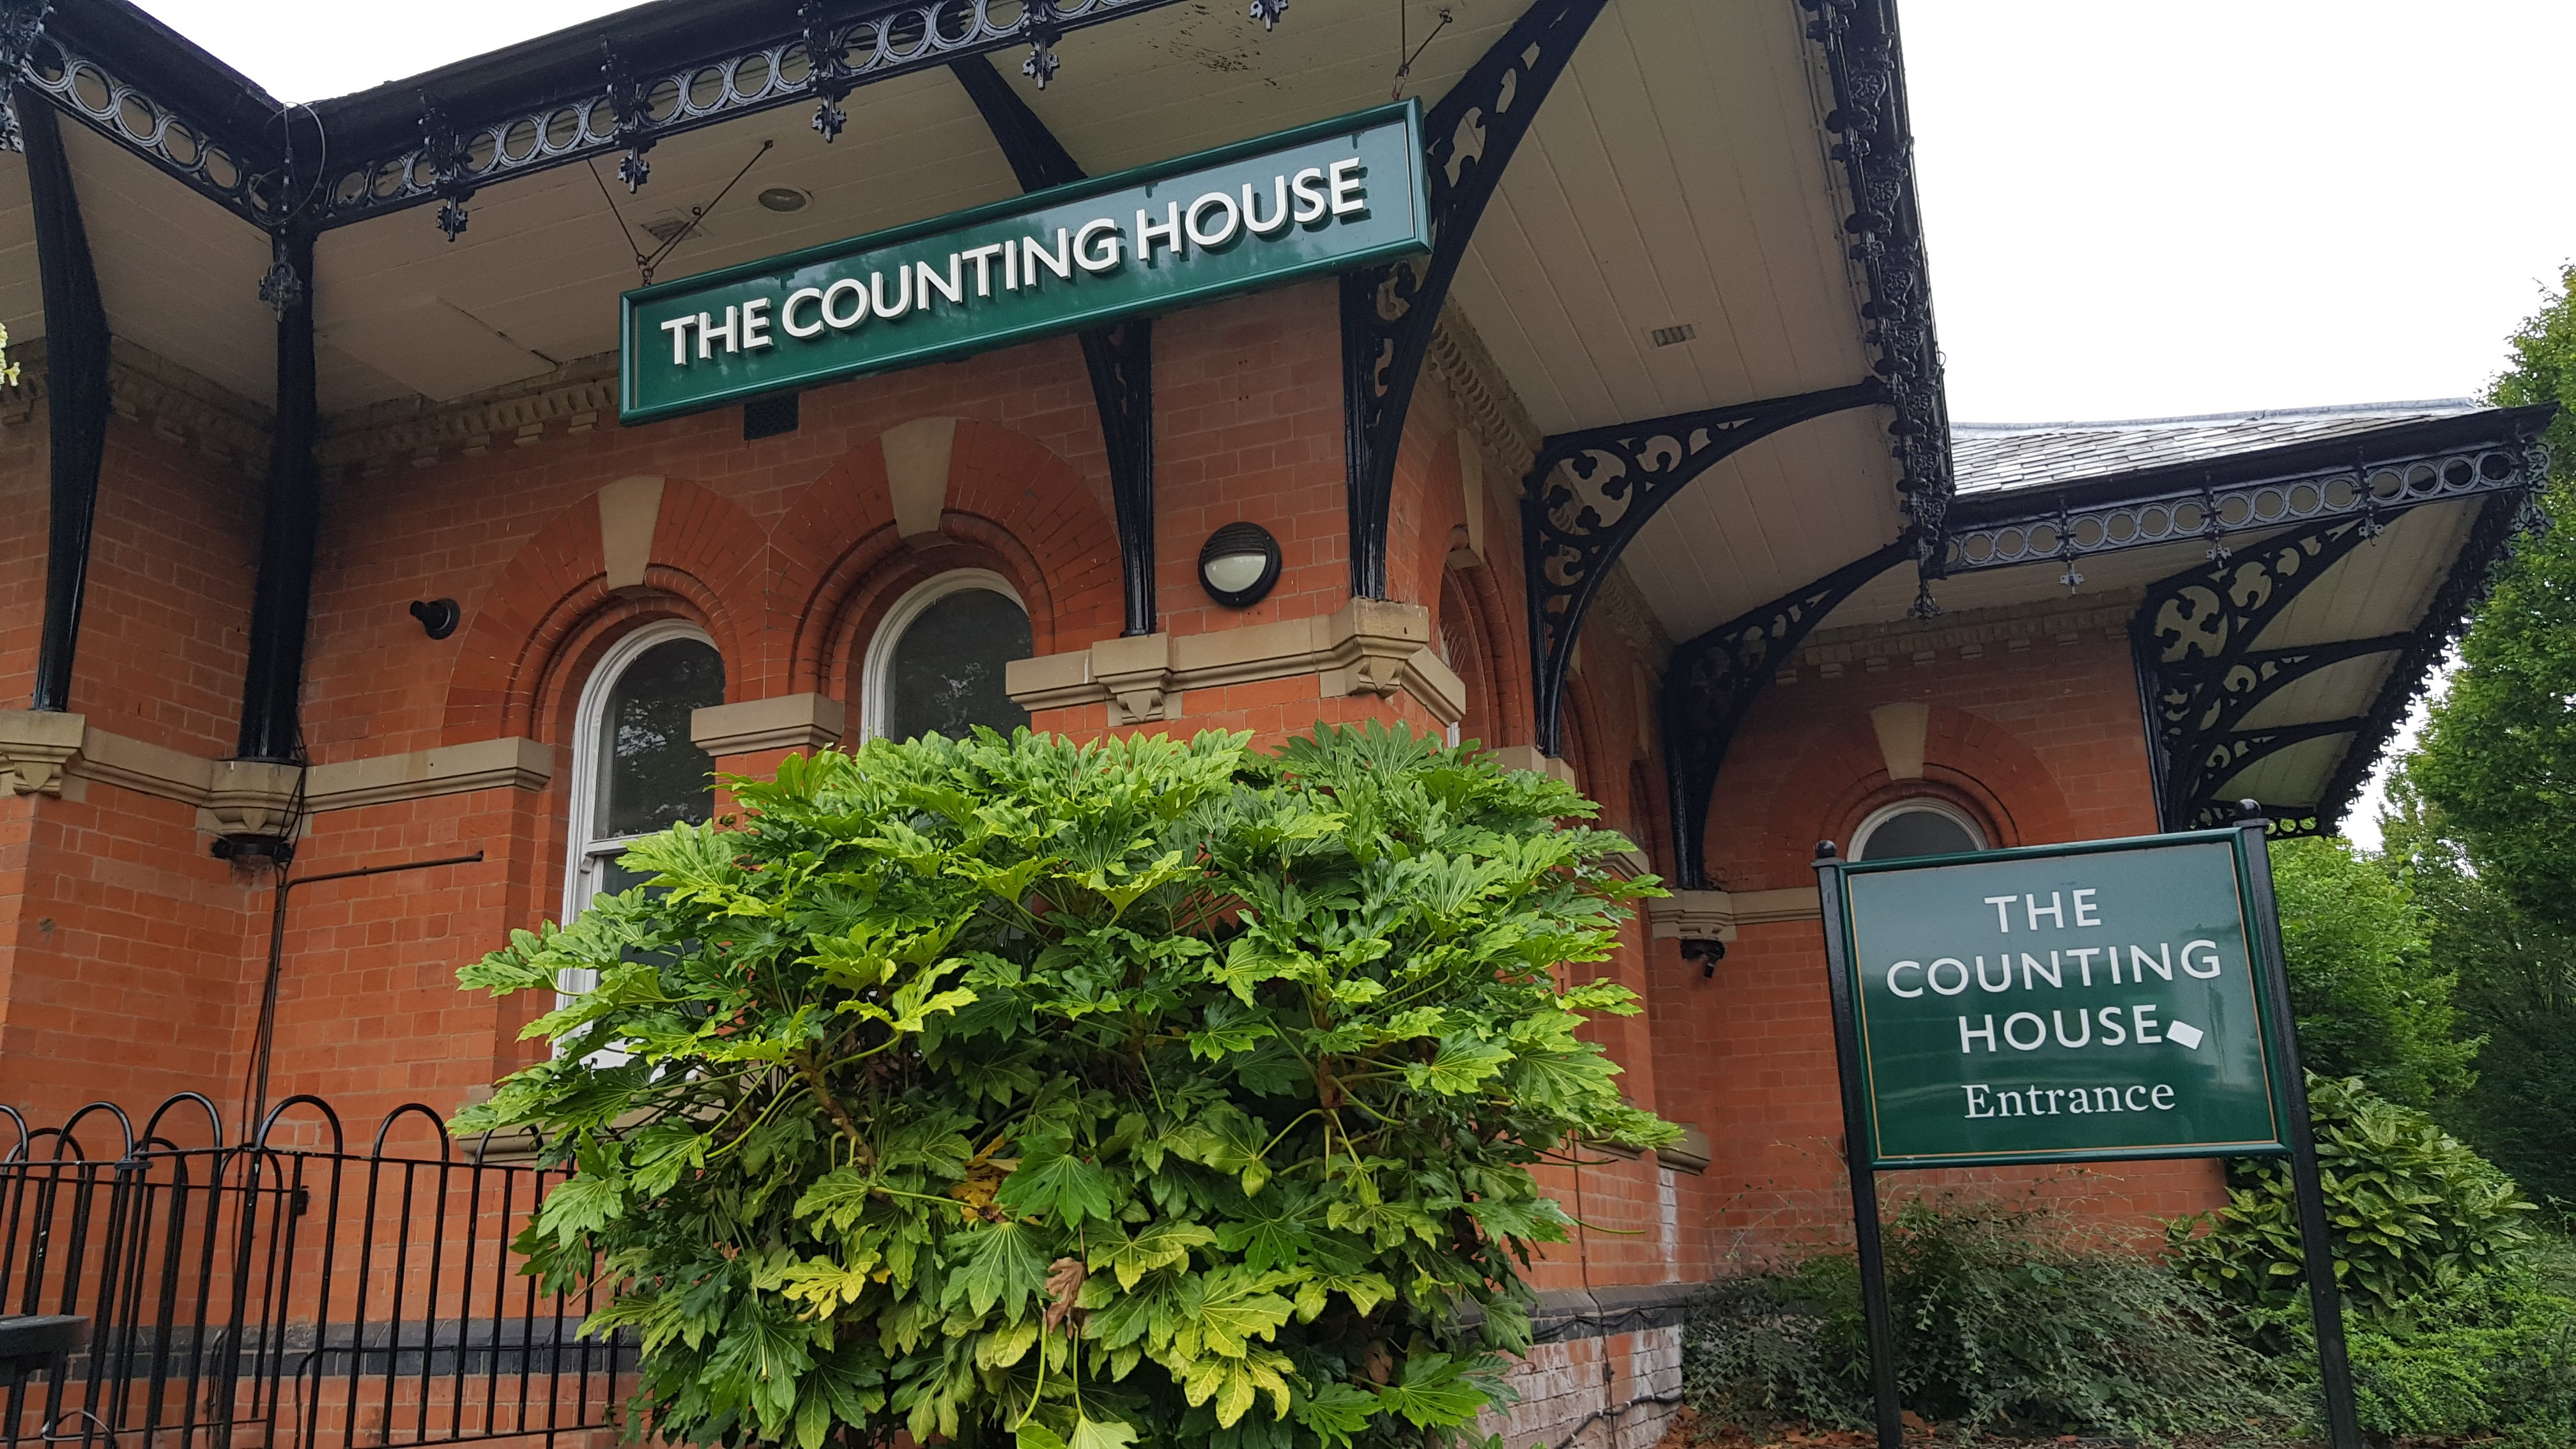 The Counting House is popular with fans visiting the King Power Stadium